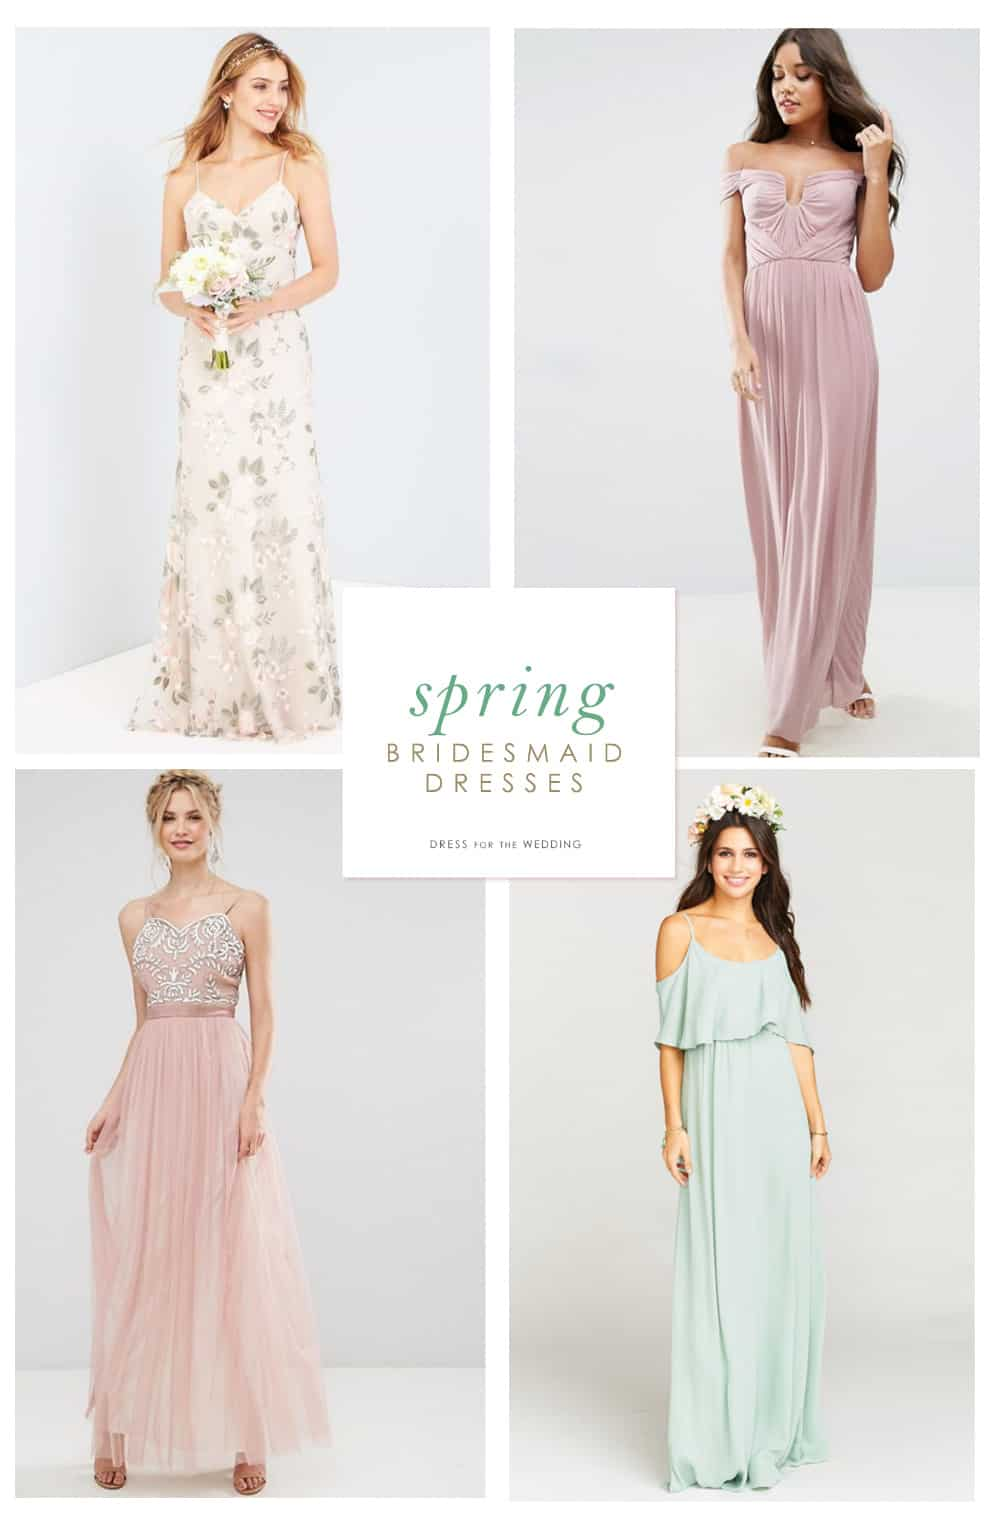 Spring bridesmaid dresses dress for the wedding bridesmaid dresses for spring weddings spring bridesmaid dresses ombrellifo Image collections